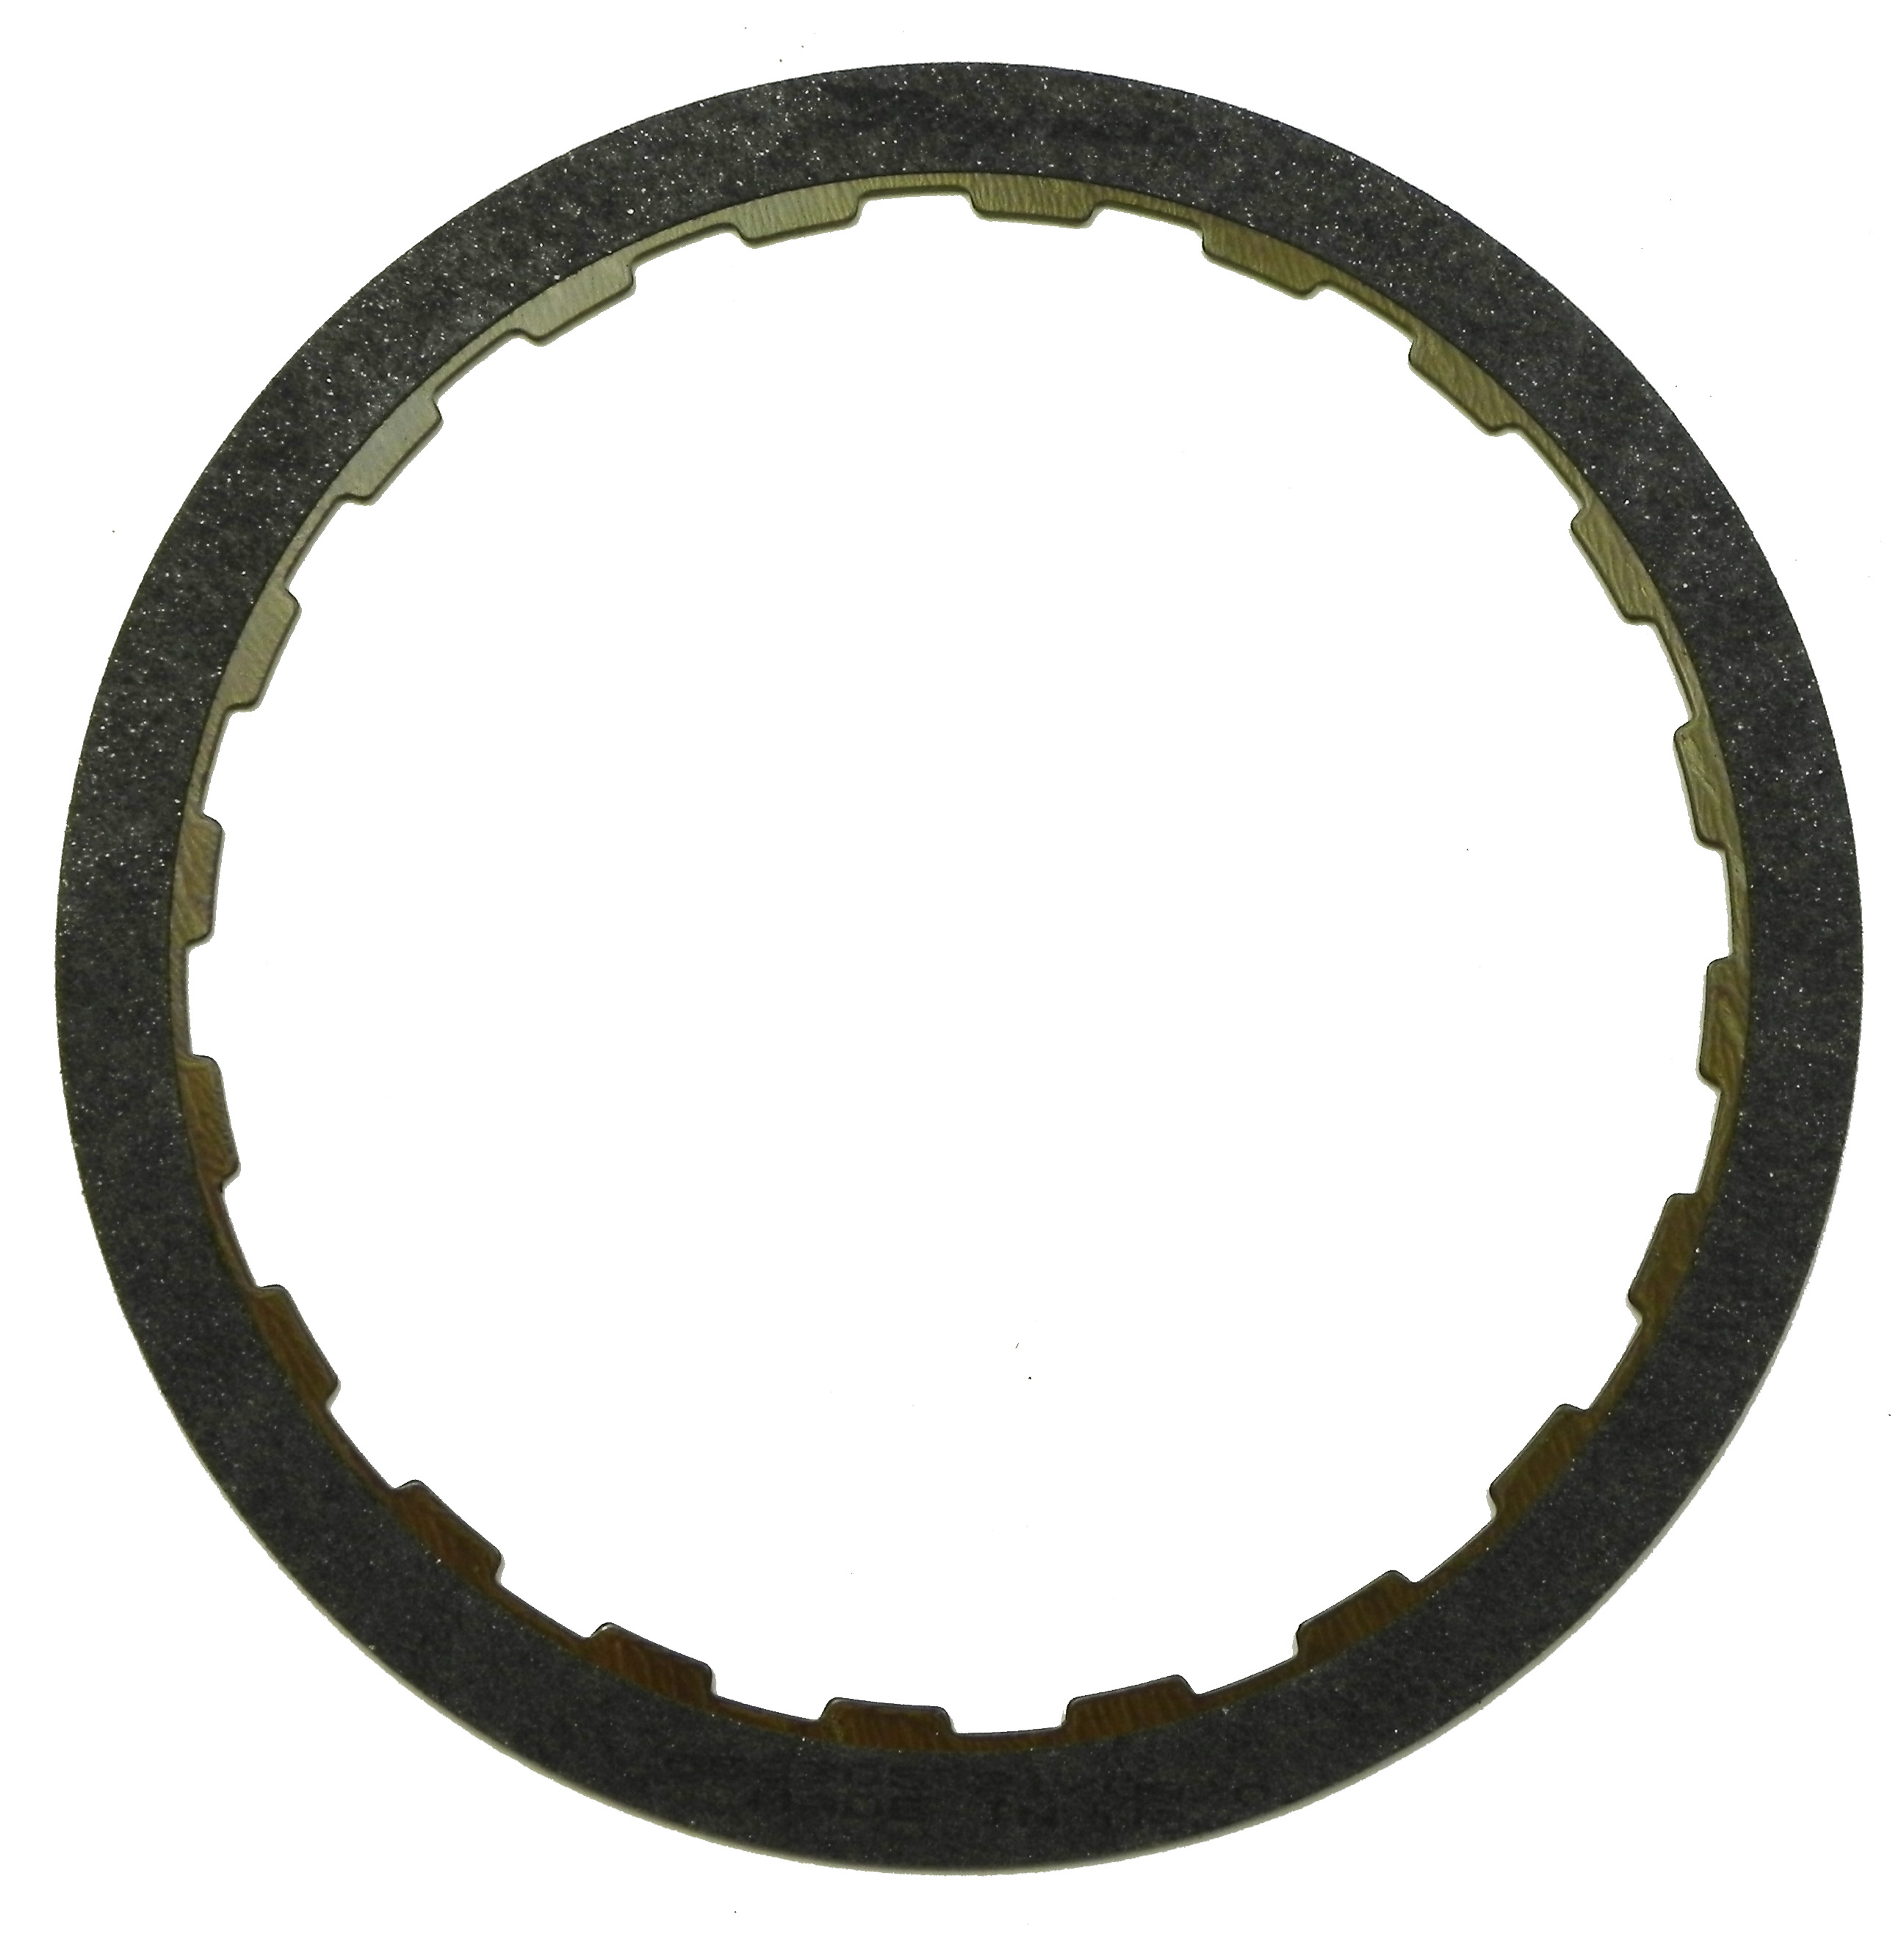 TH700-R4, 4L60, 4L60E, 4L65E, 4L70E High Energy Friction Clutch Plate